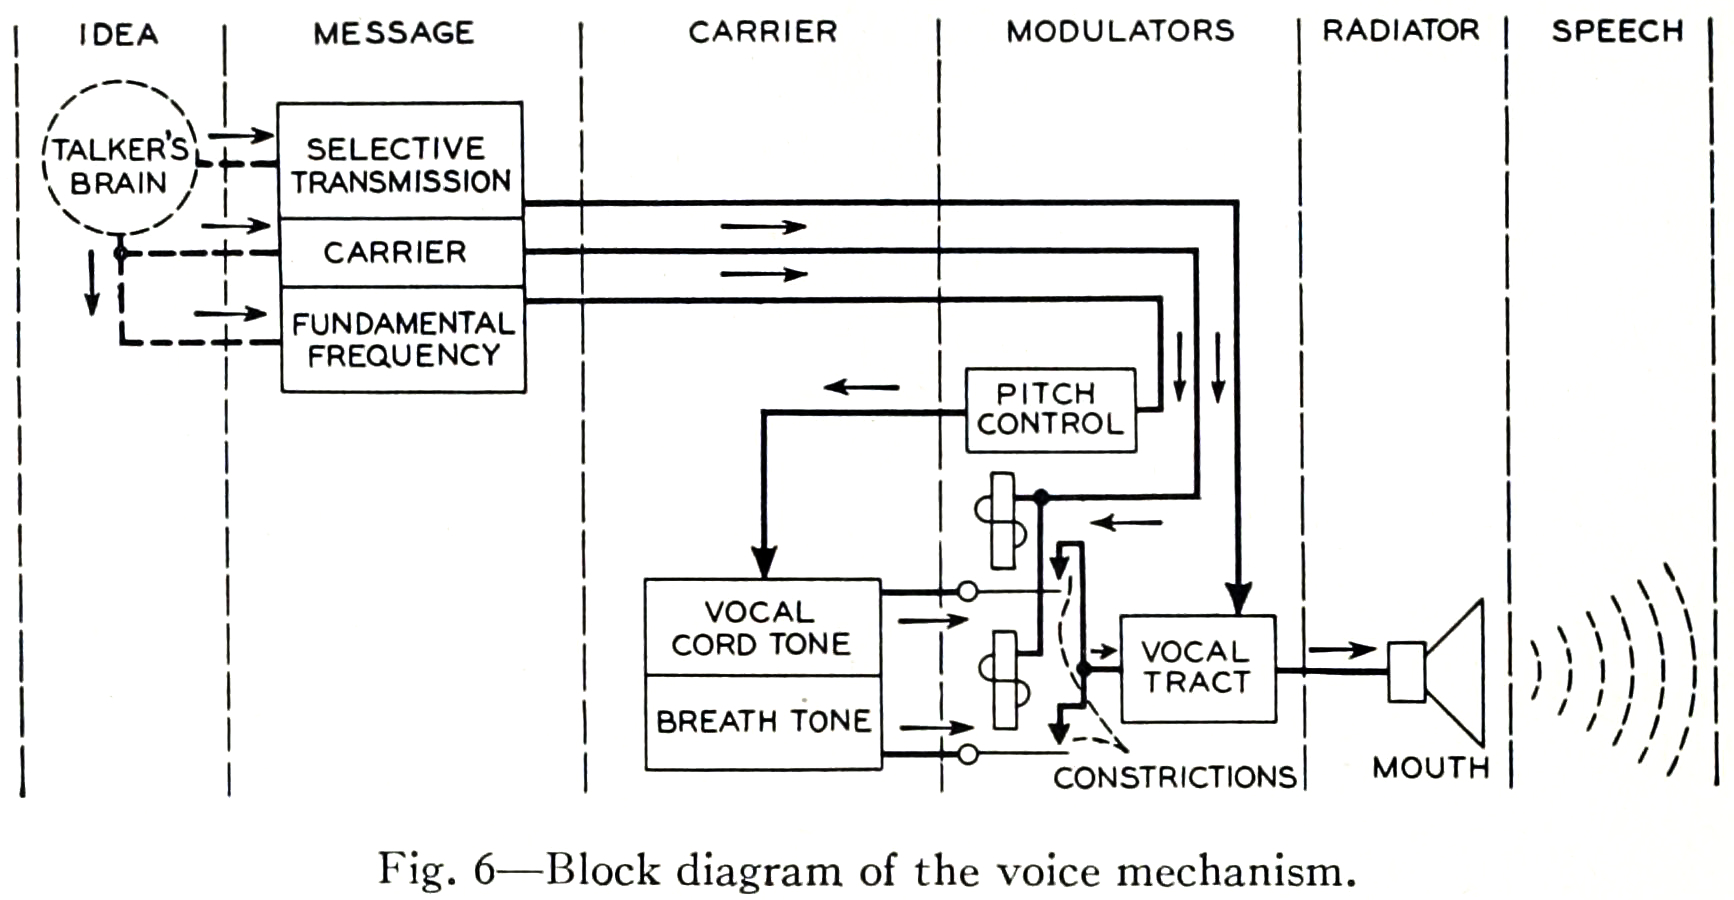 Filehomer Dudley October 1940 The Carrier Nature Of Speech Block Diagram Drawing Images